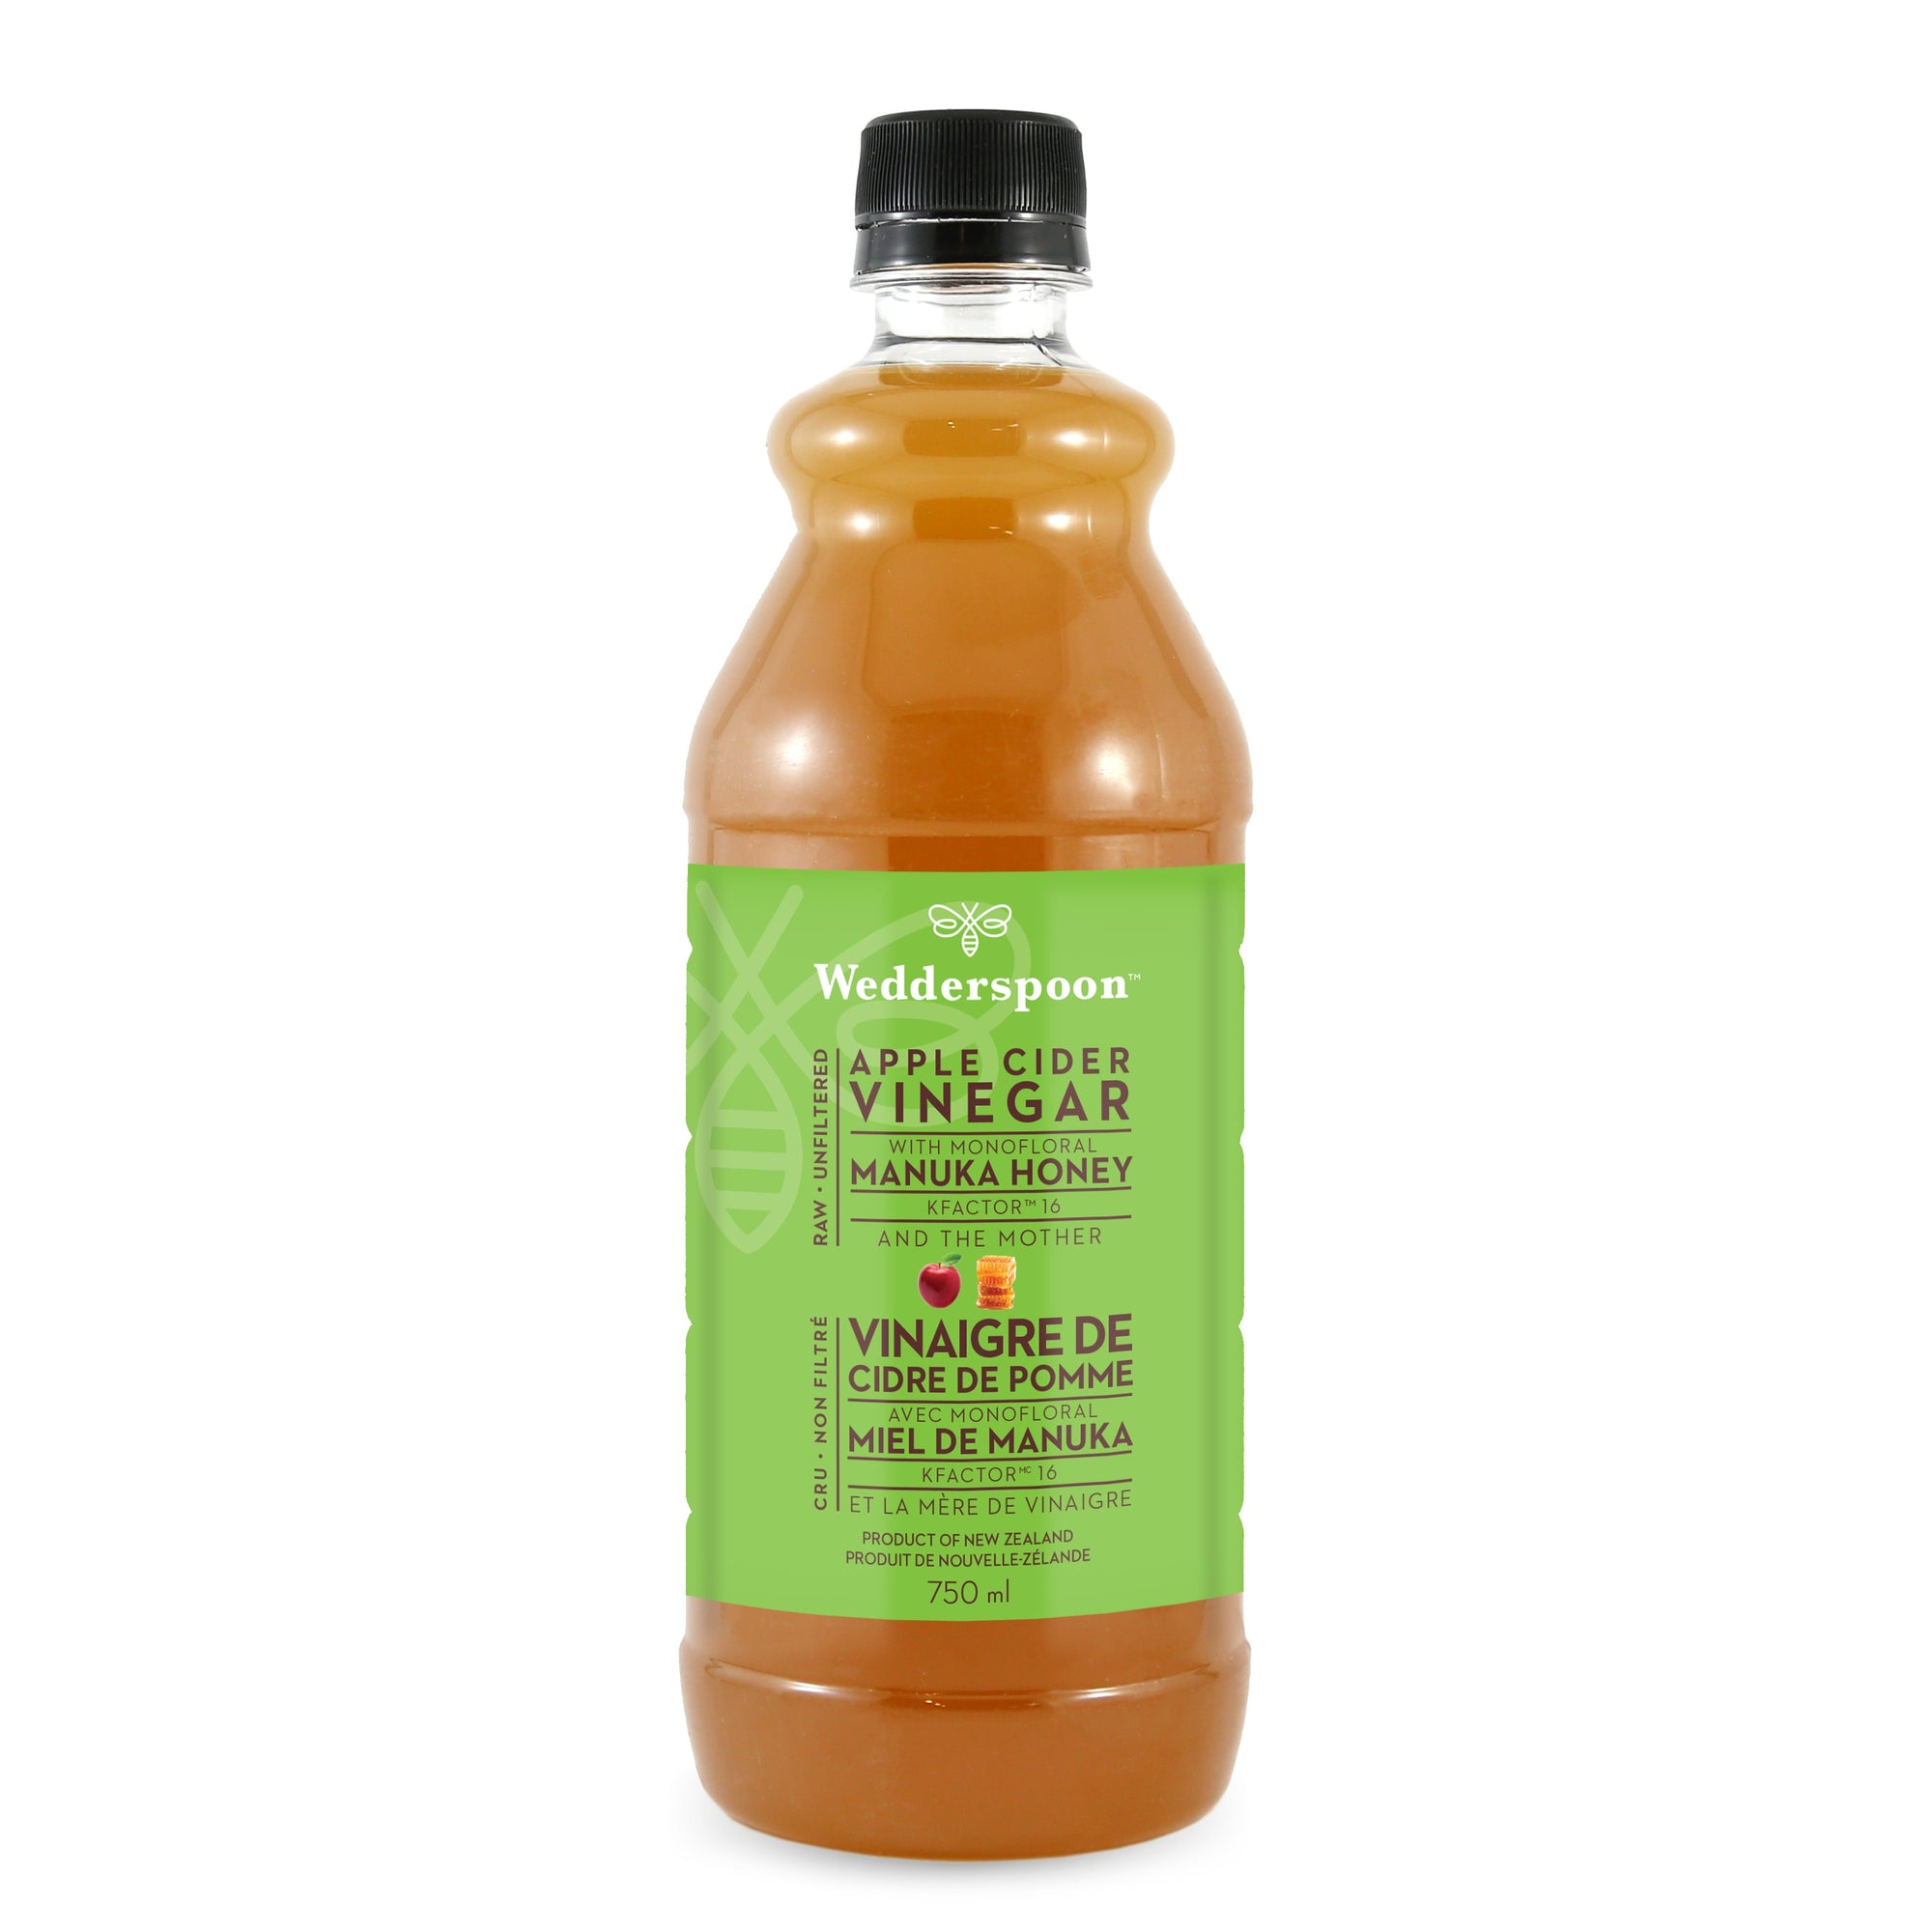 Food & Drink - Wedderspoon - Apple Cider Vinegar With Manuka Honey, 750ml